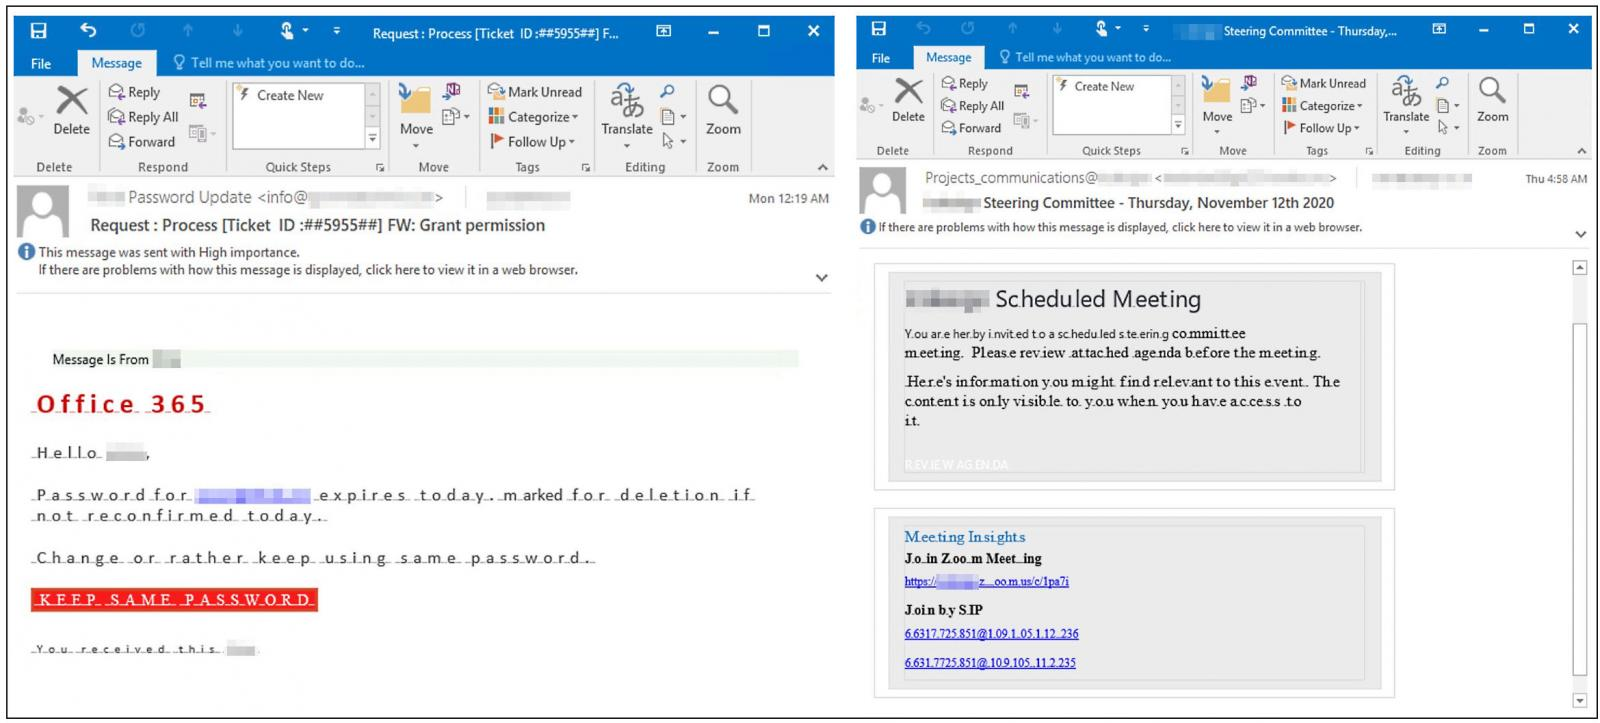 Office 365 phishing campaign uses redirector URLs and detects sandboxes to evade detection